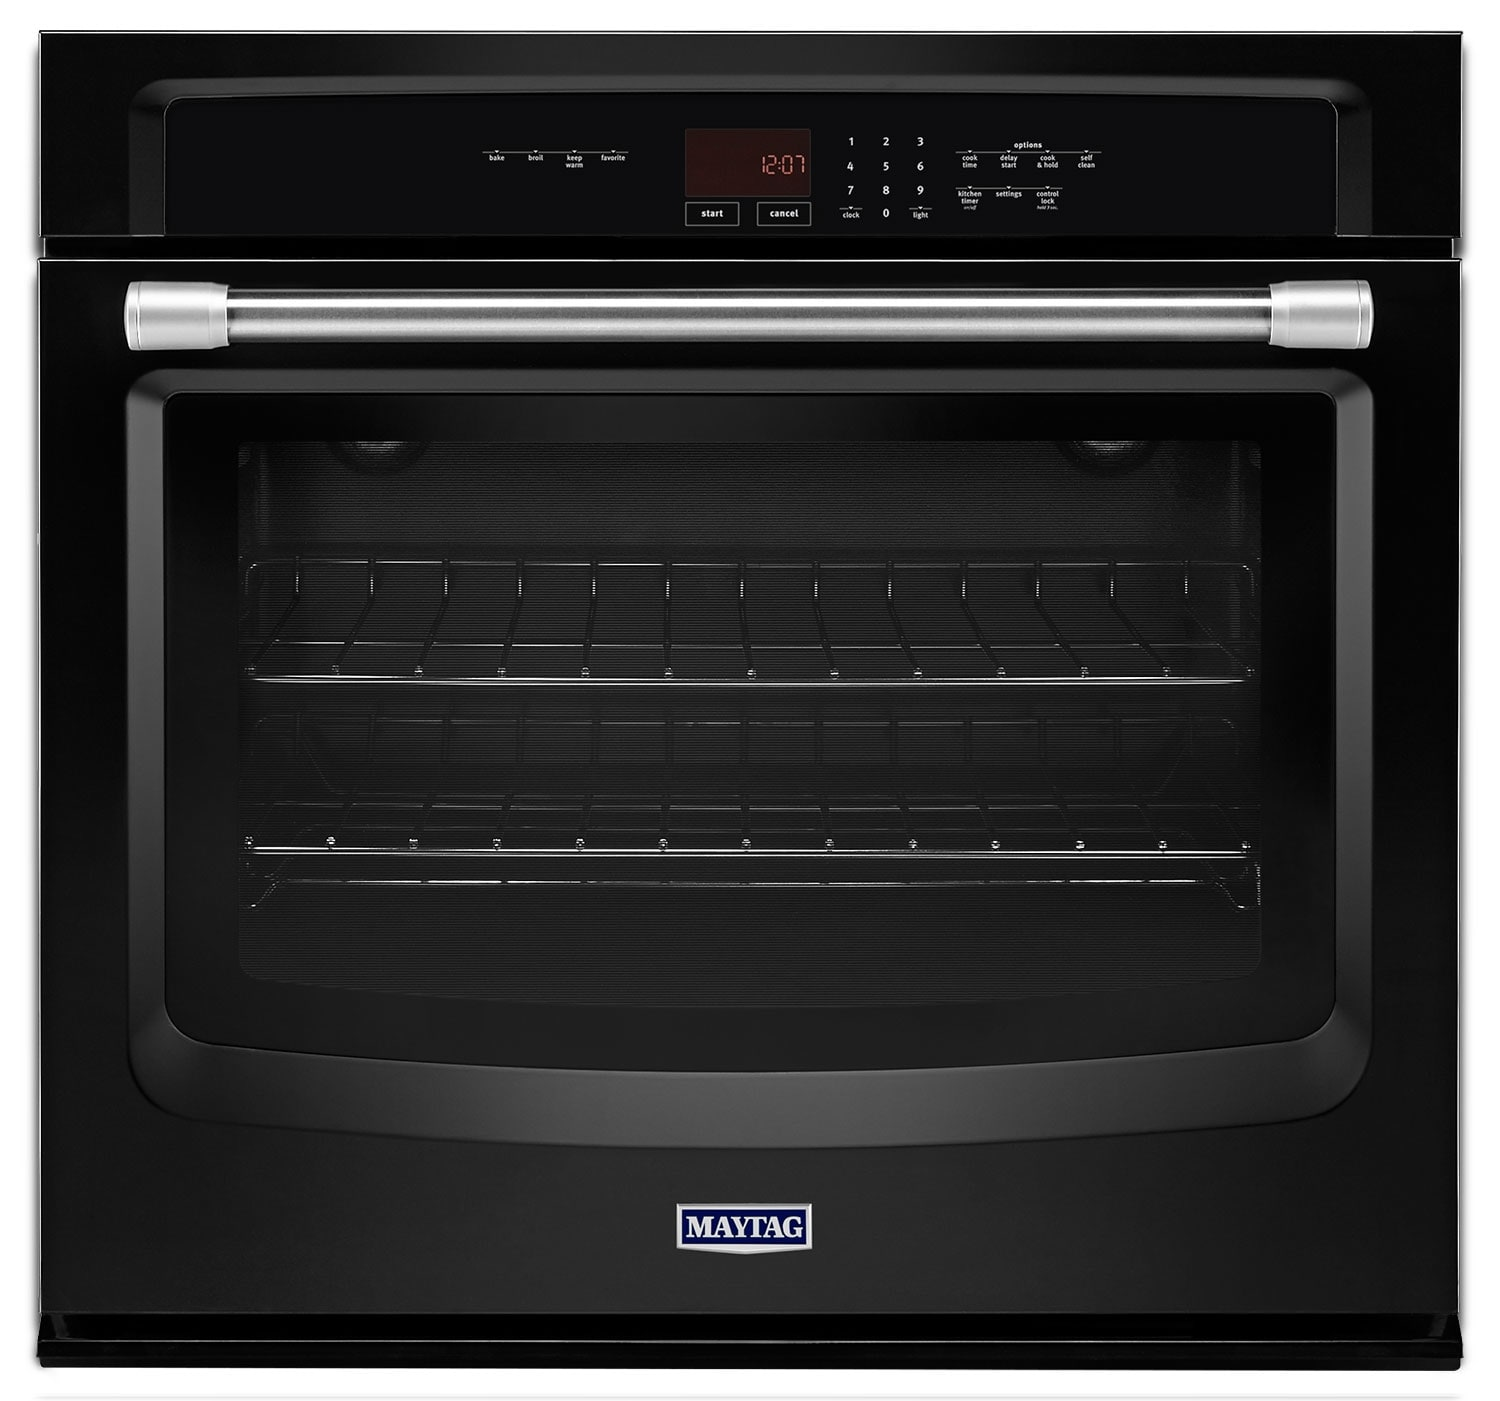 Cooking Products - Maytag Black Wall Oven (5.0 Cu. Ft.) - MEW7530DE